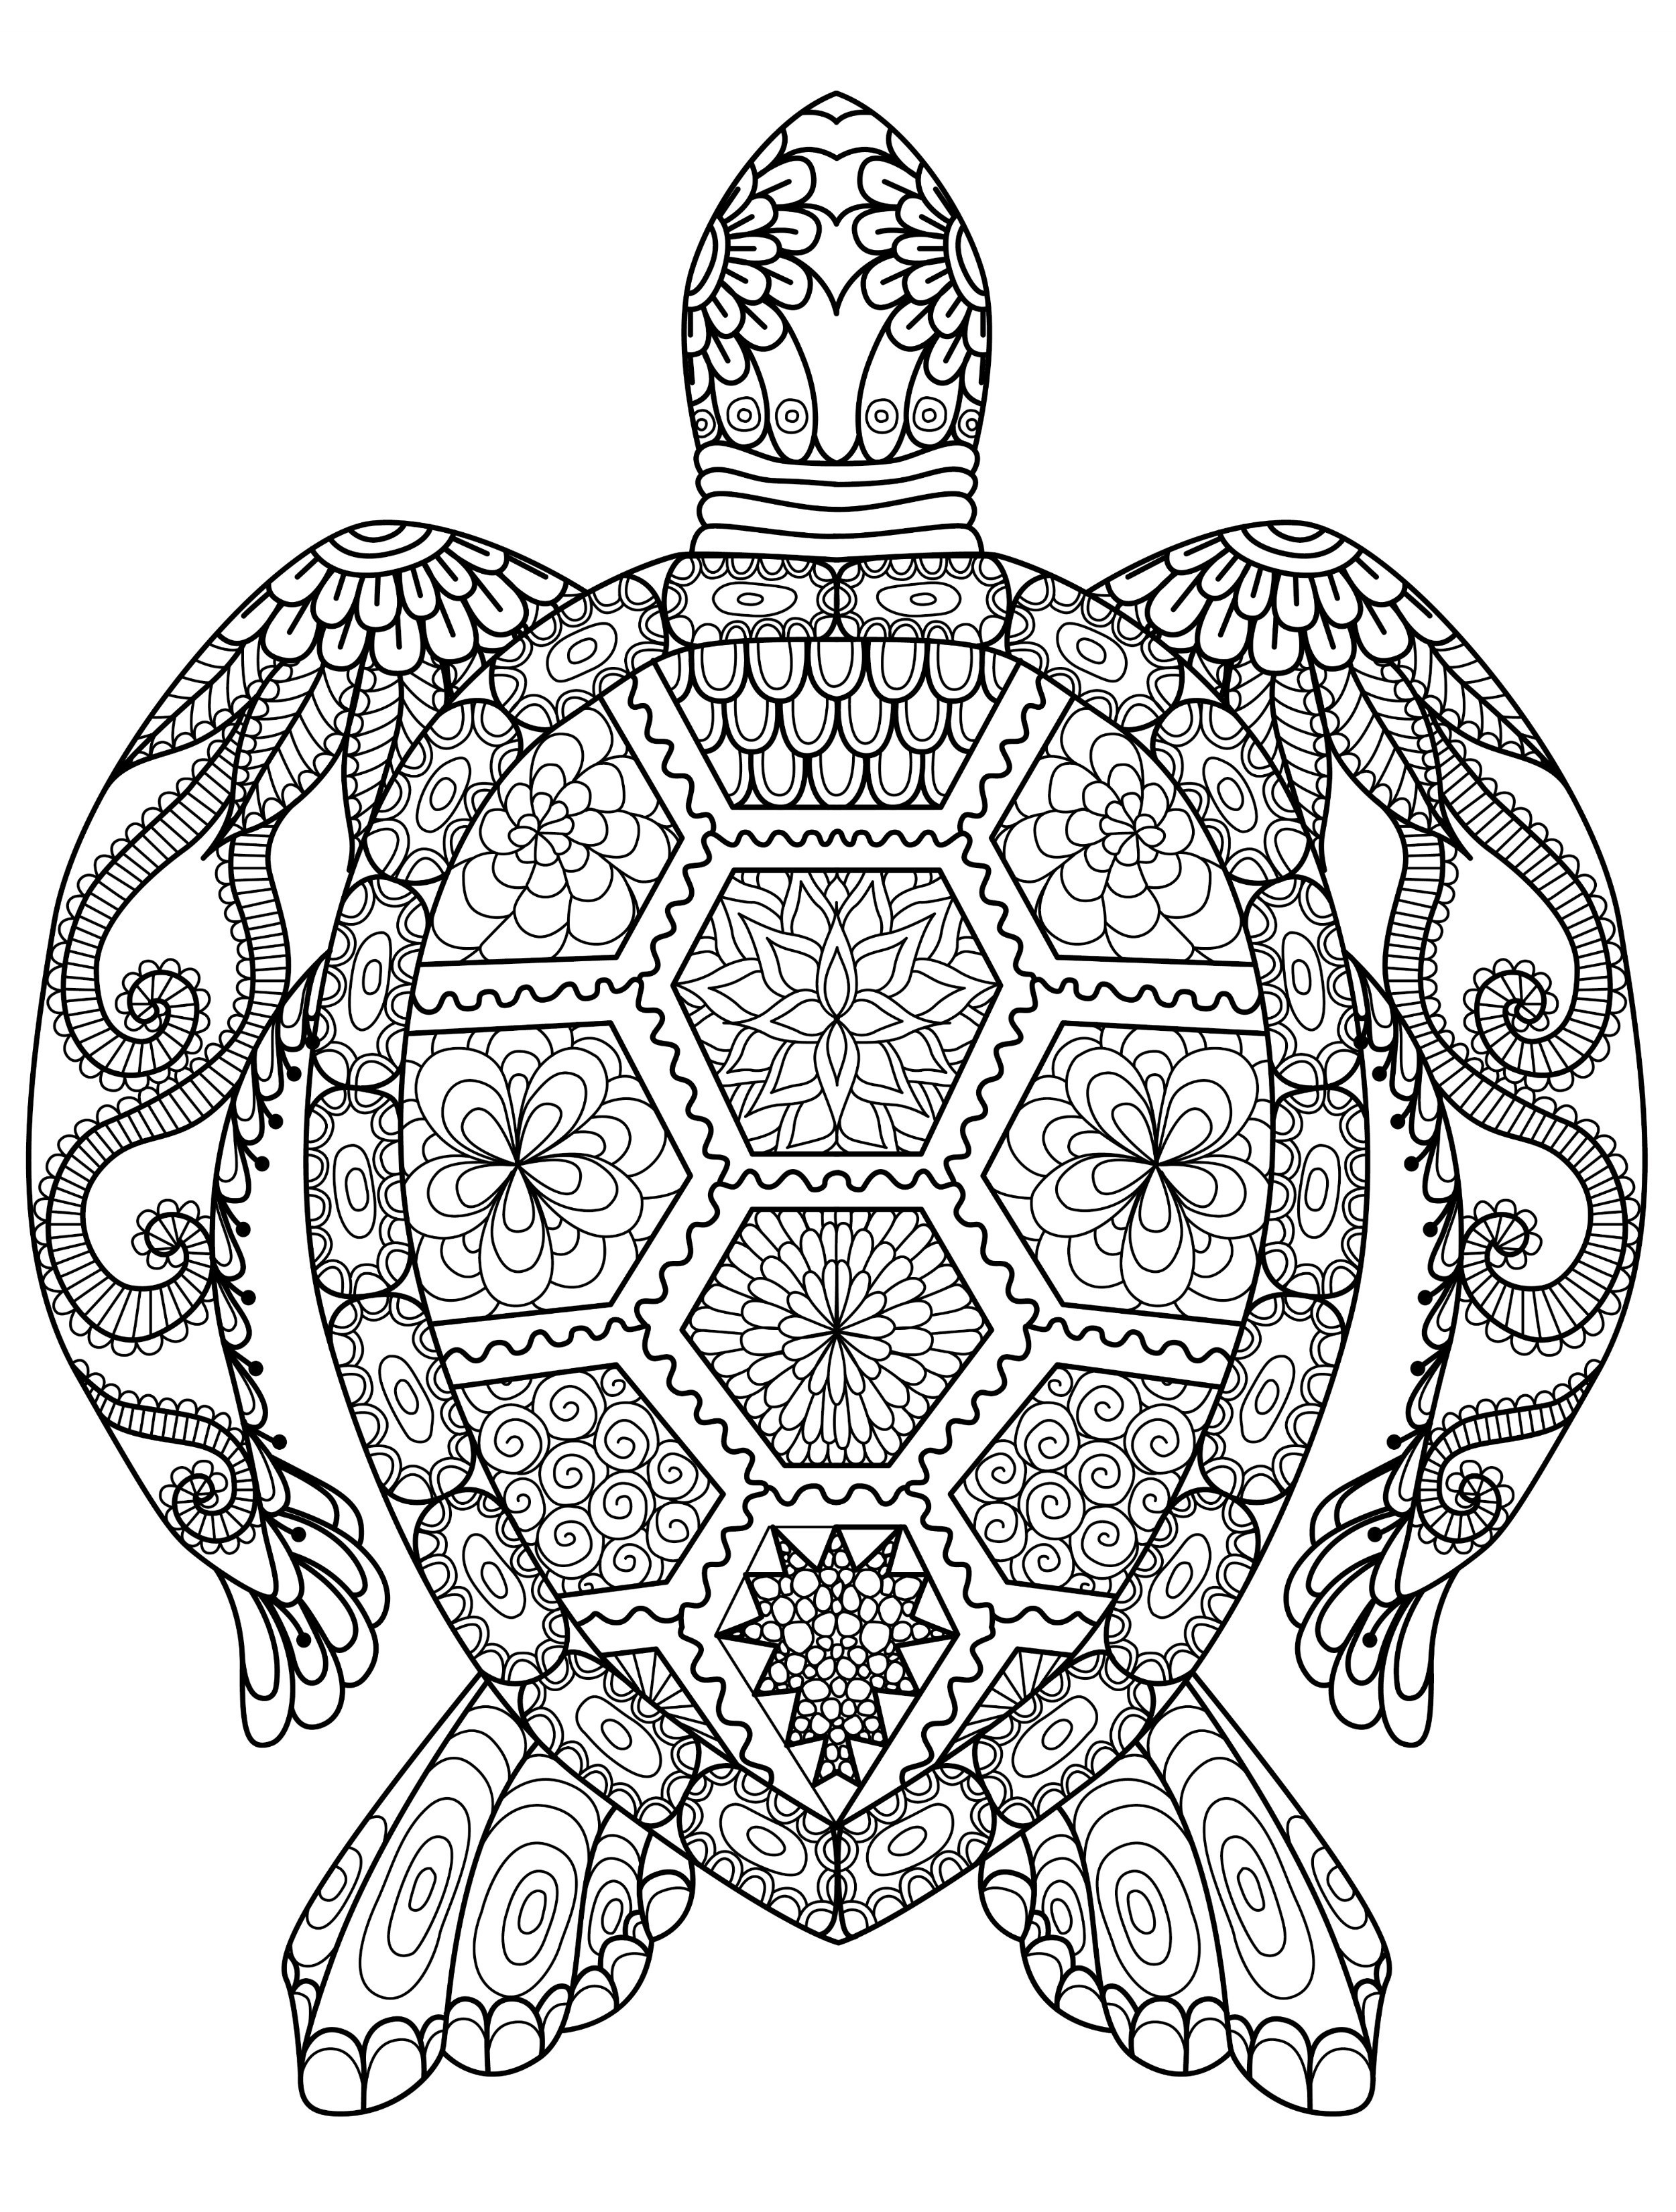 Best ideas about Adult Coloring Books . Save or Pin Adult Coloring Pages Animals Best Coloring Pages For Kids Now.